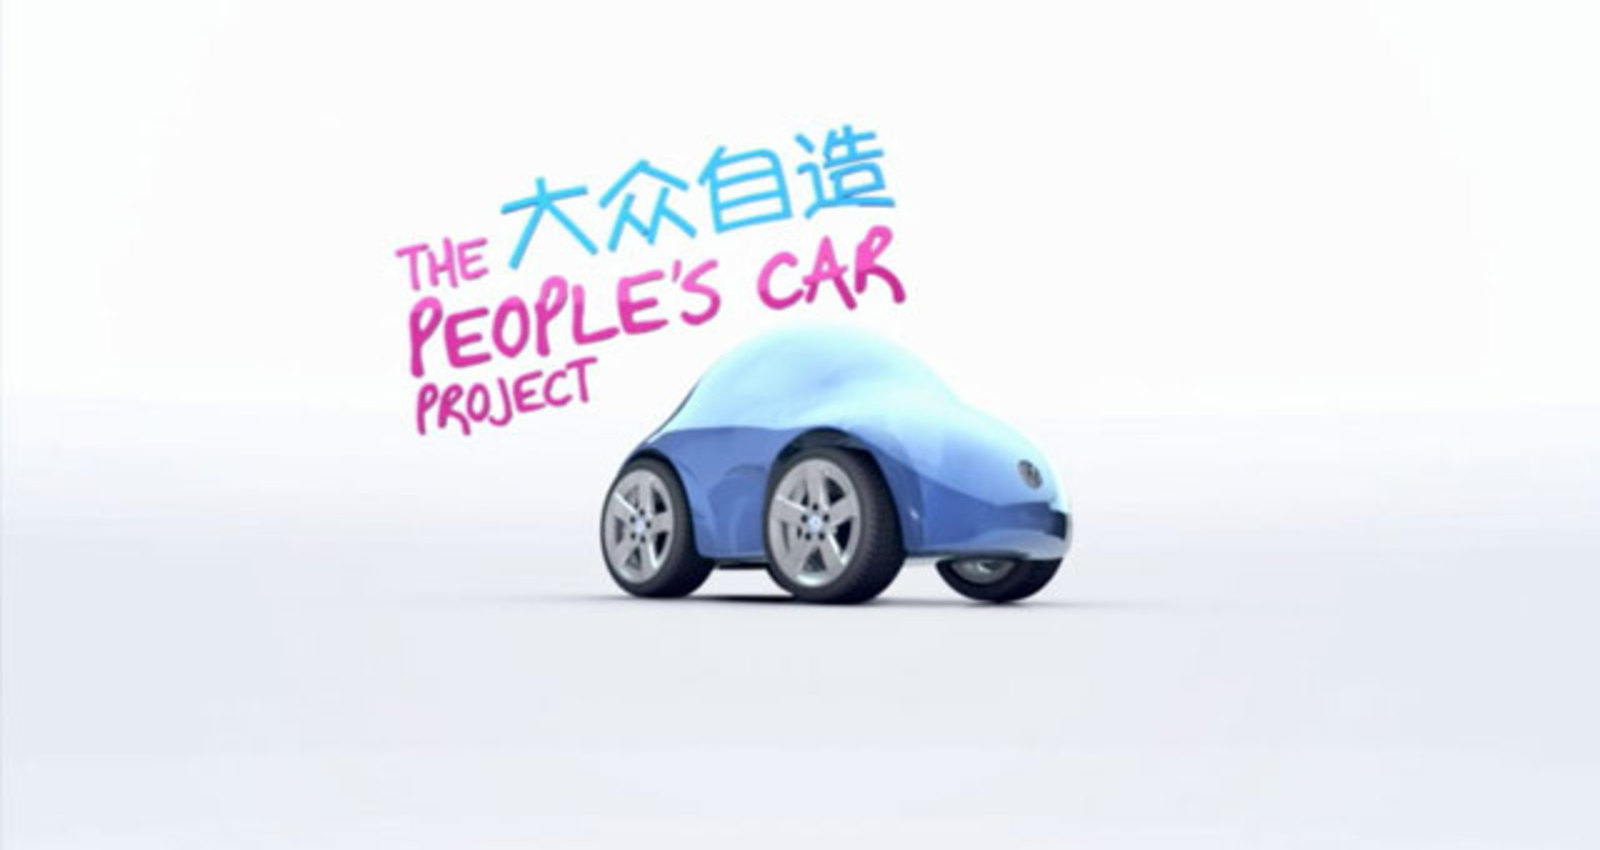 The People's Car Project